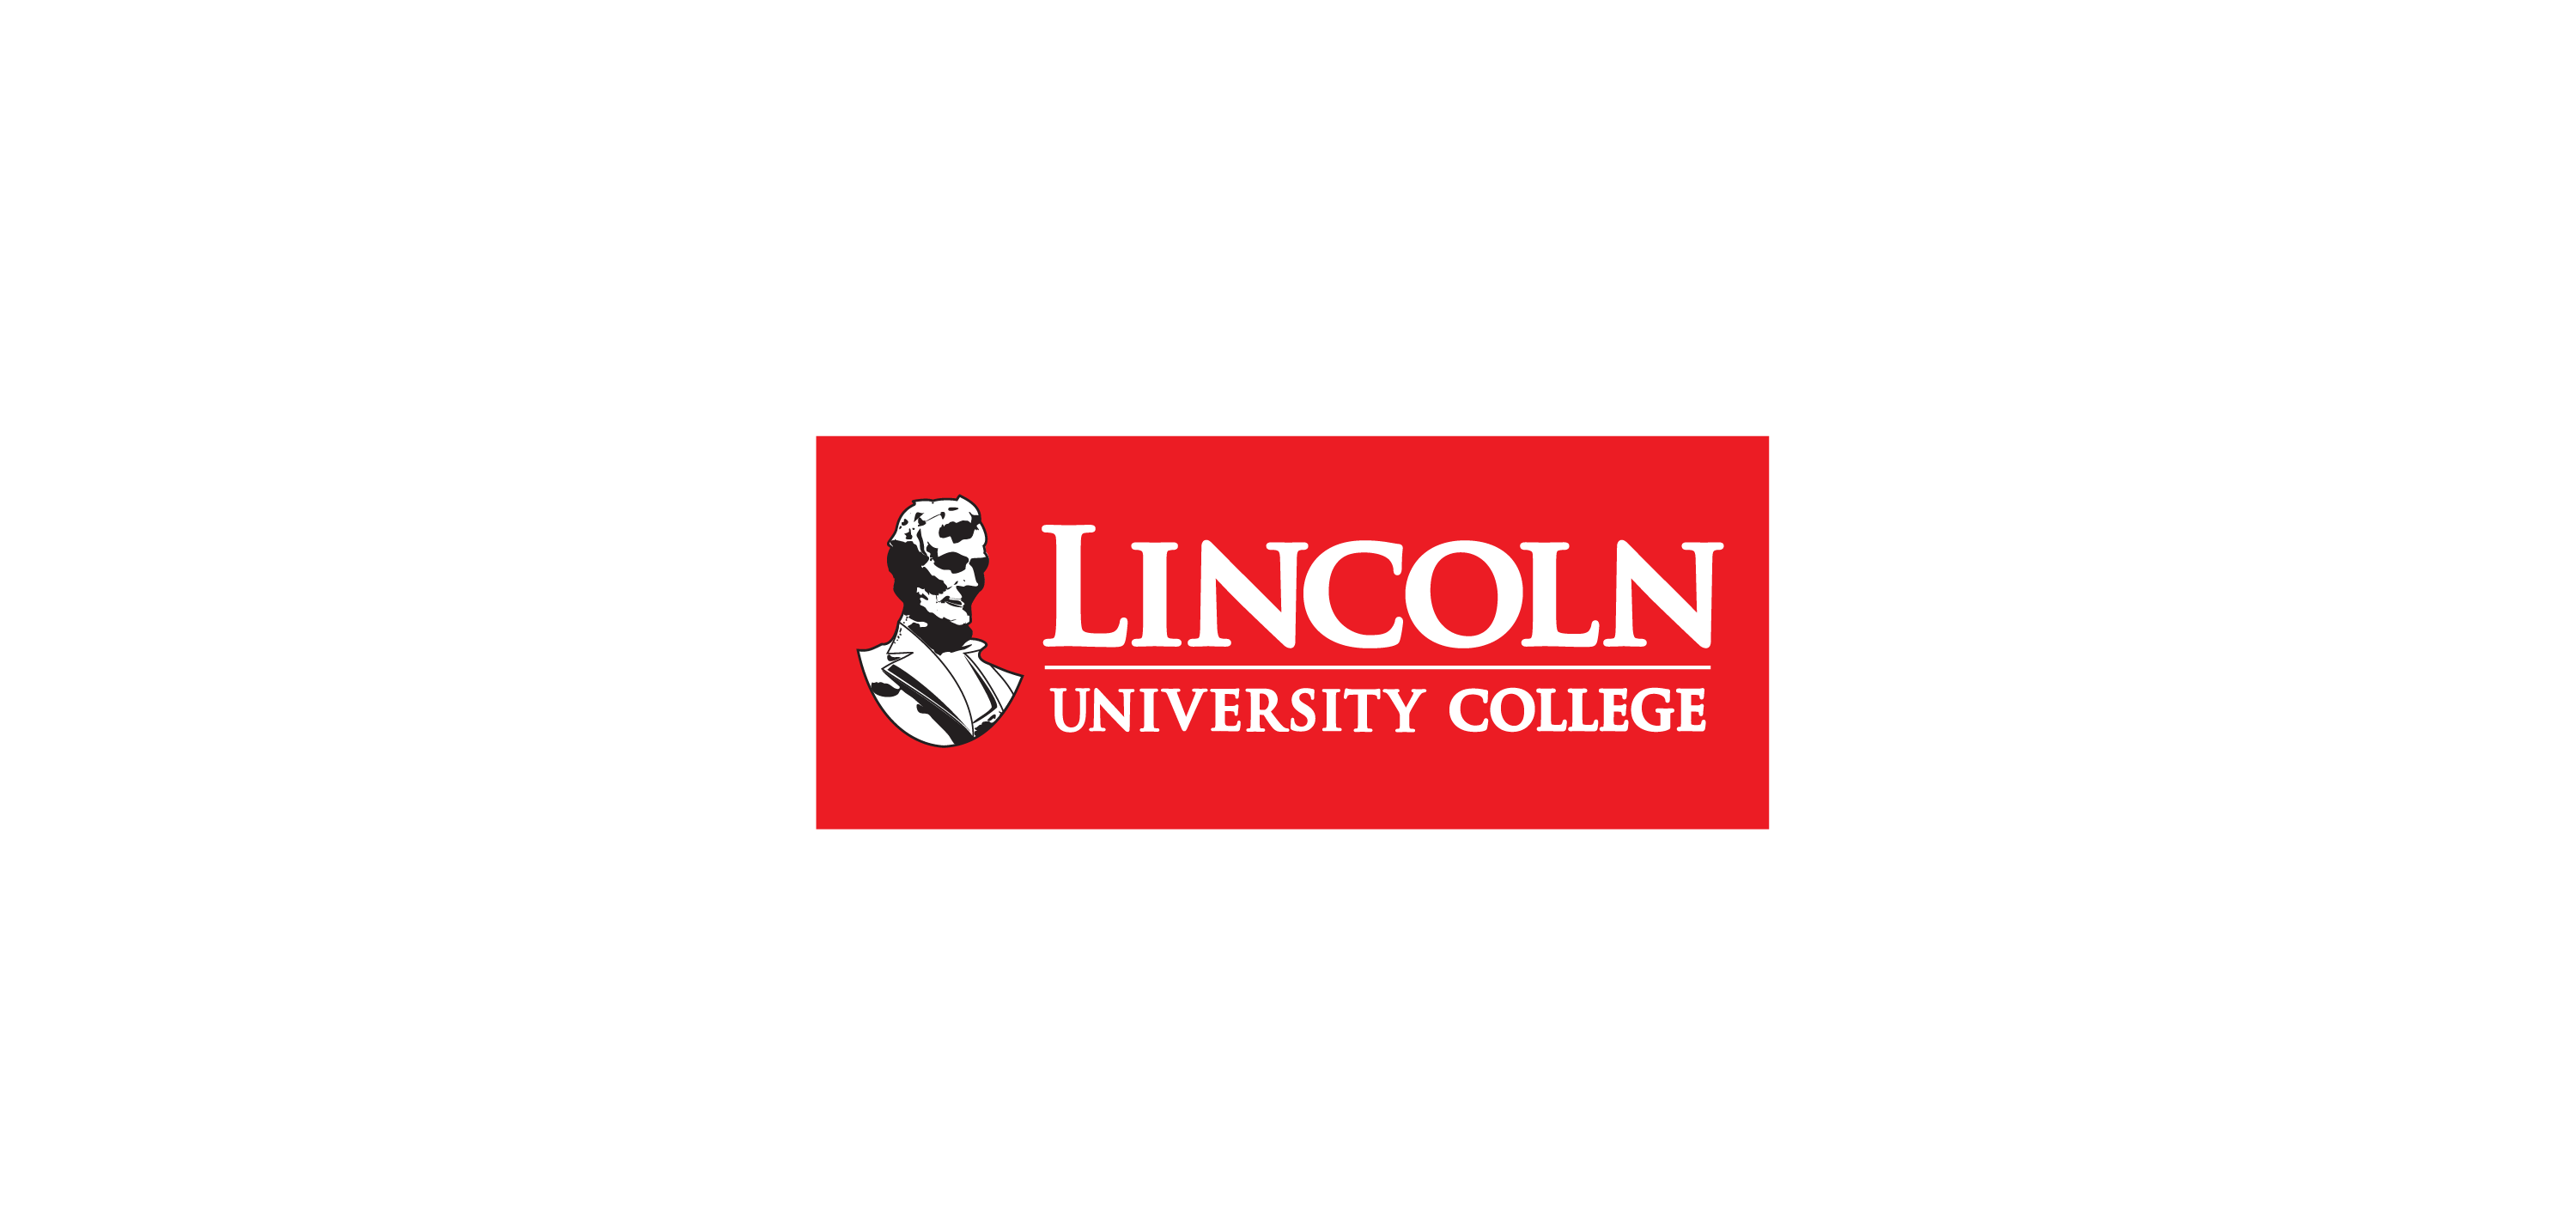 Lincon University College Logo